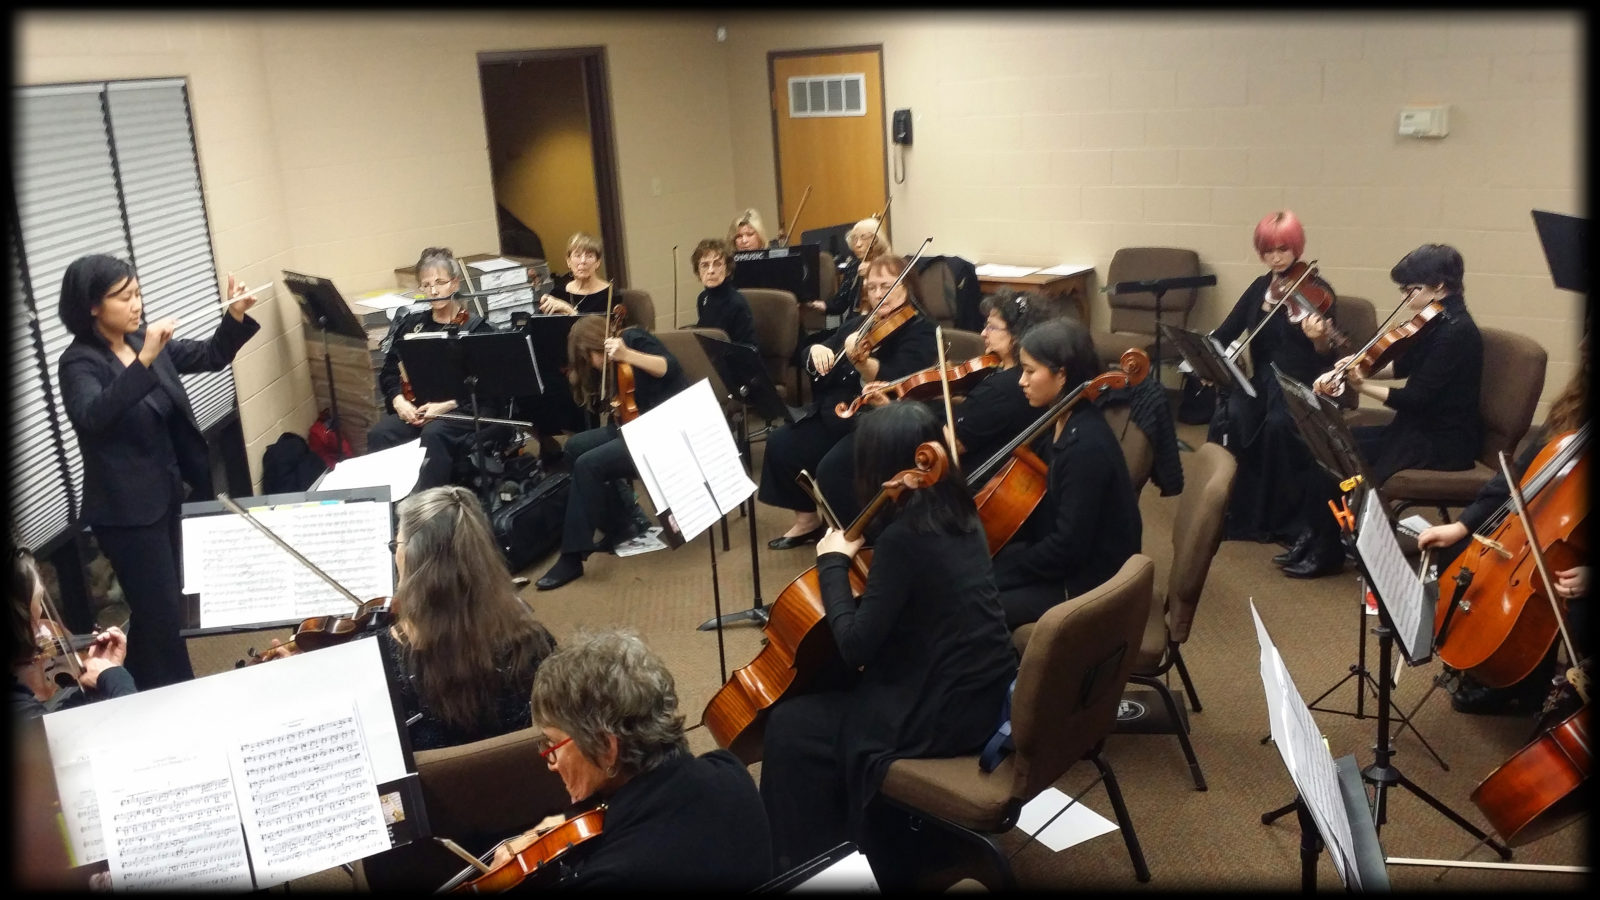 Image of WOA Women's Orchestra of Arizona musicians rehearsing with Livia Gho conducting.